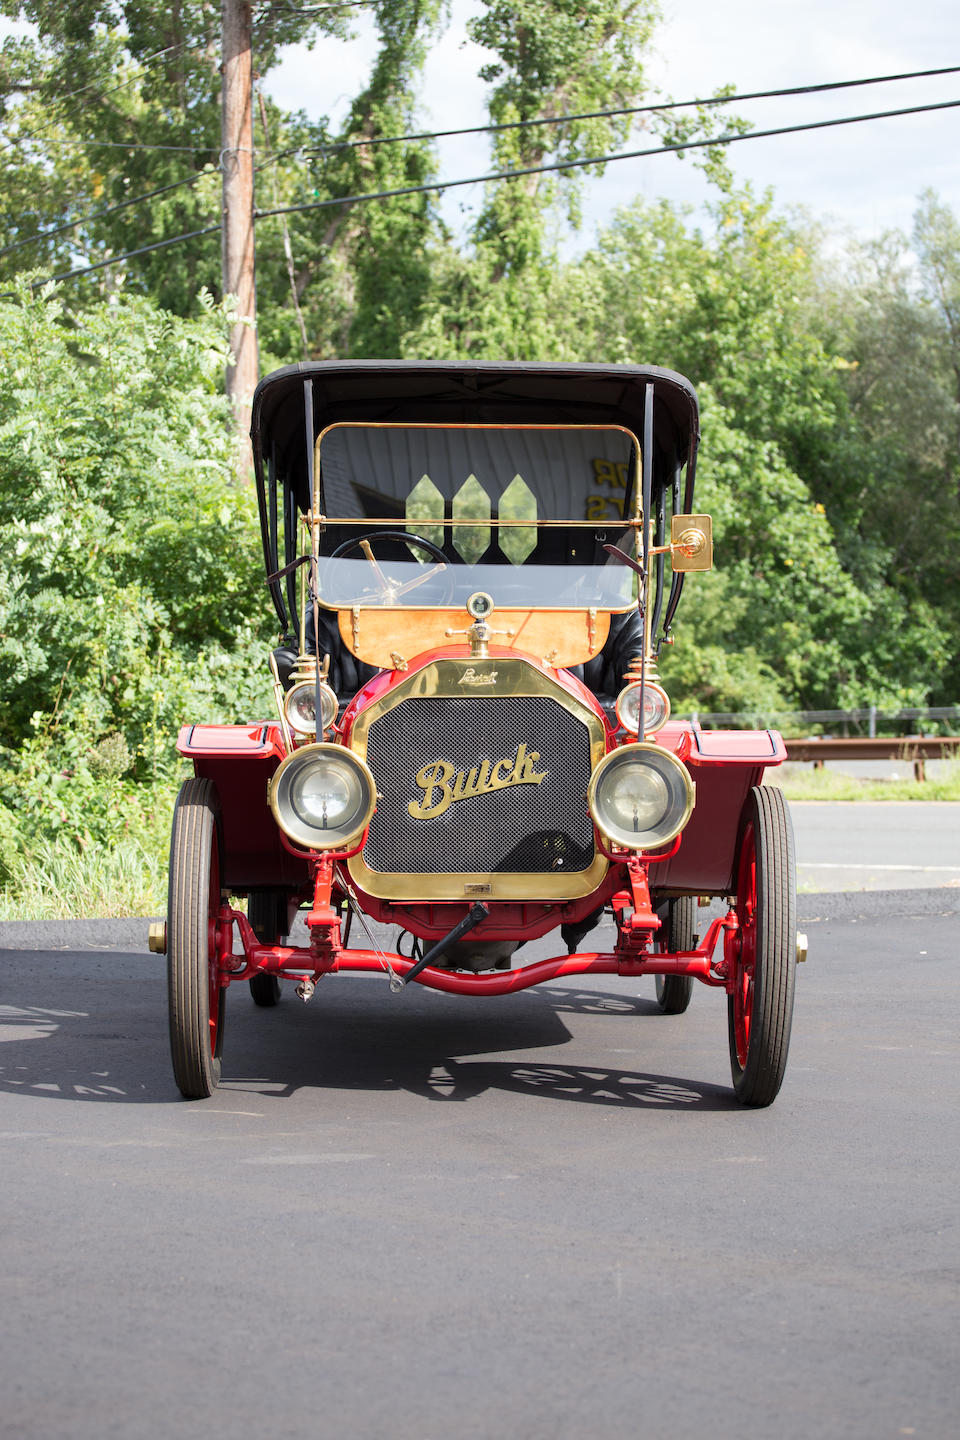 <i>From the collection of Jim Hearn</i><BR /><B>1910 Buick Model 16 Toy Tonneau</B><BR />Engine no. 1367